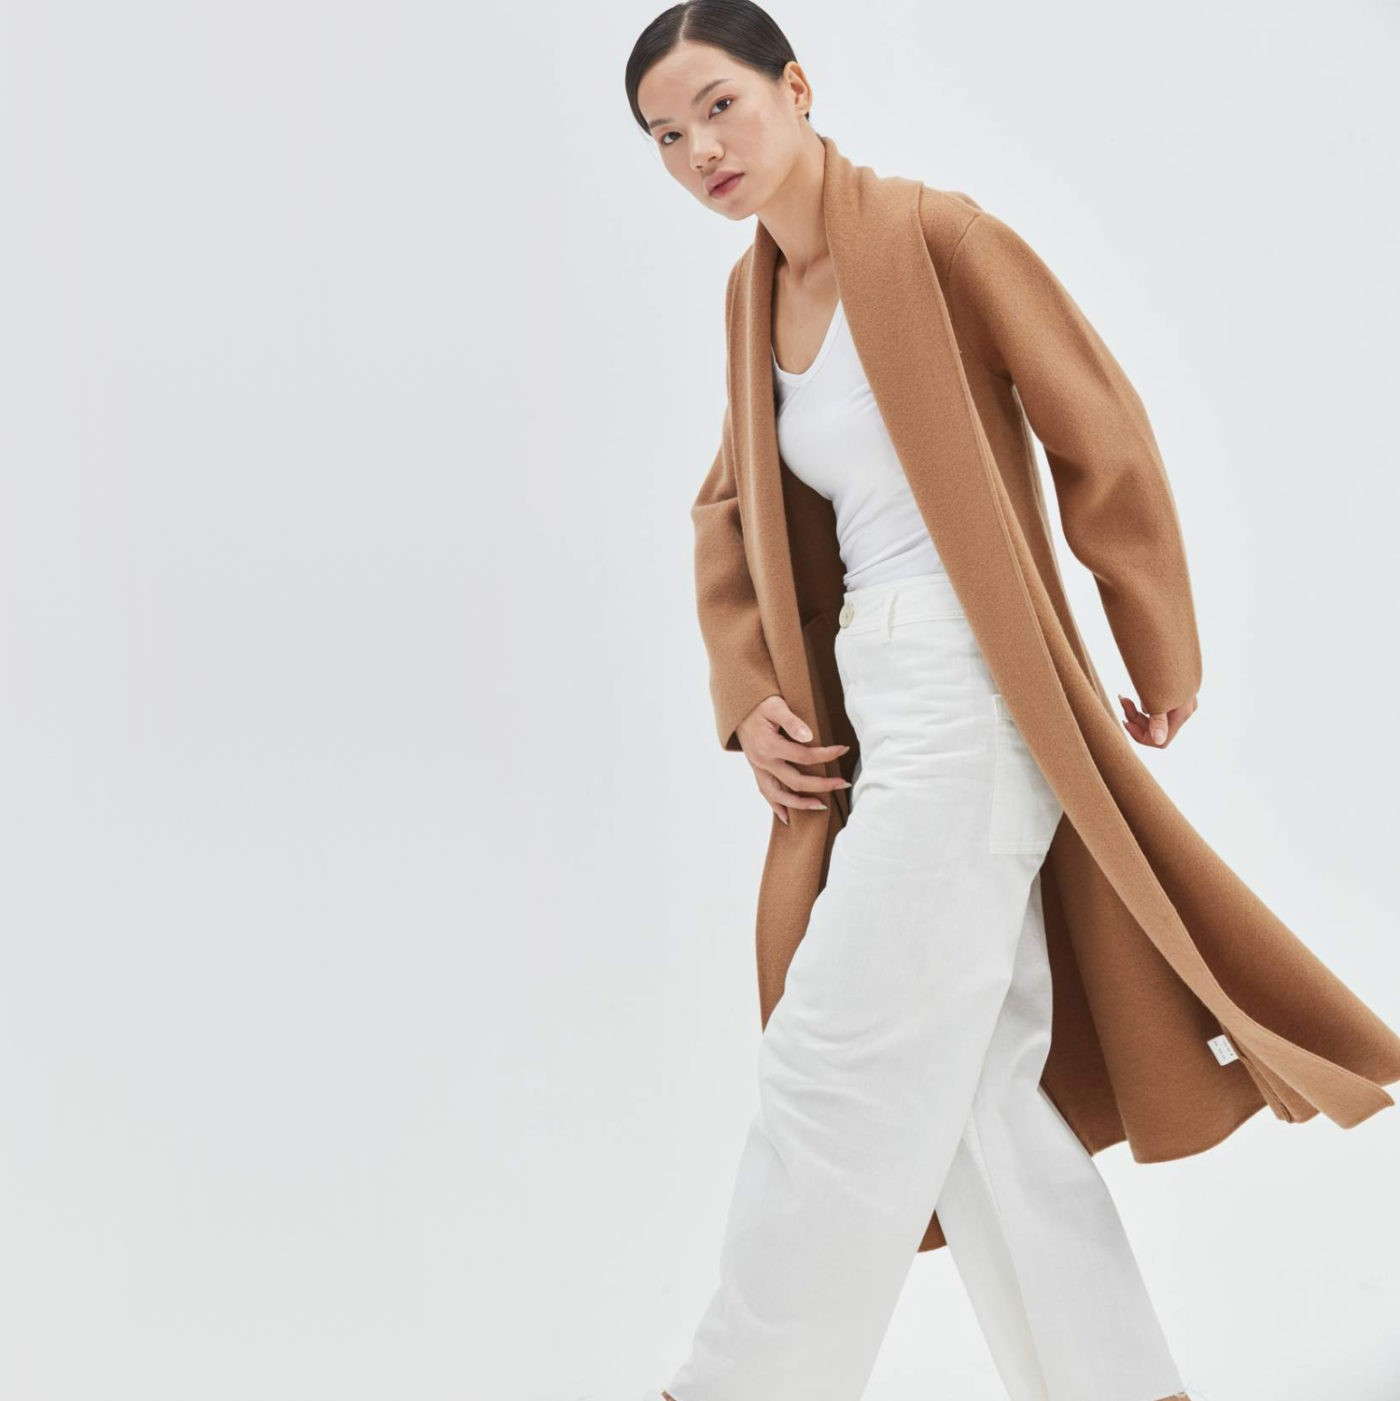 Mercado   Meeting the Conscious Consumer with Slow Fashion Startup Public Habit